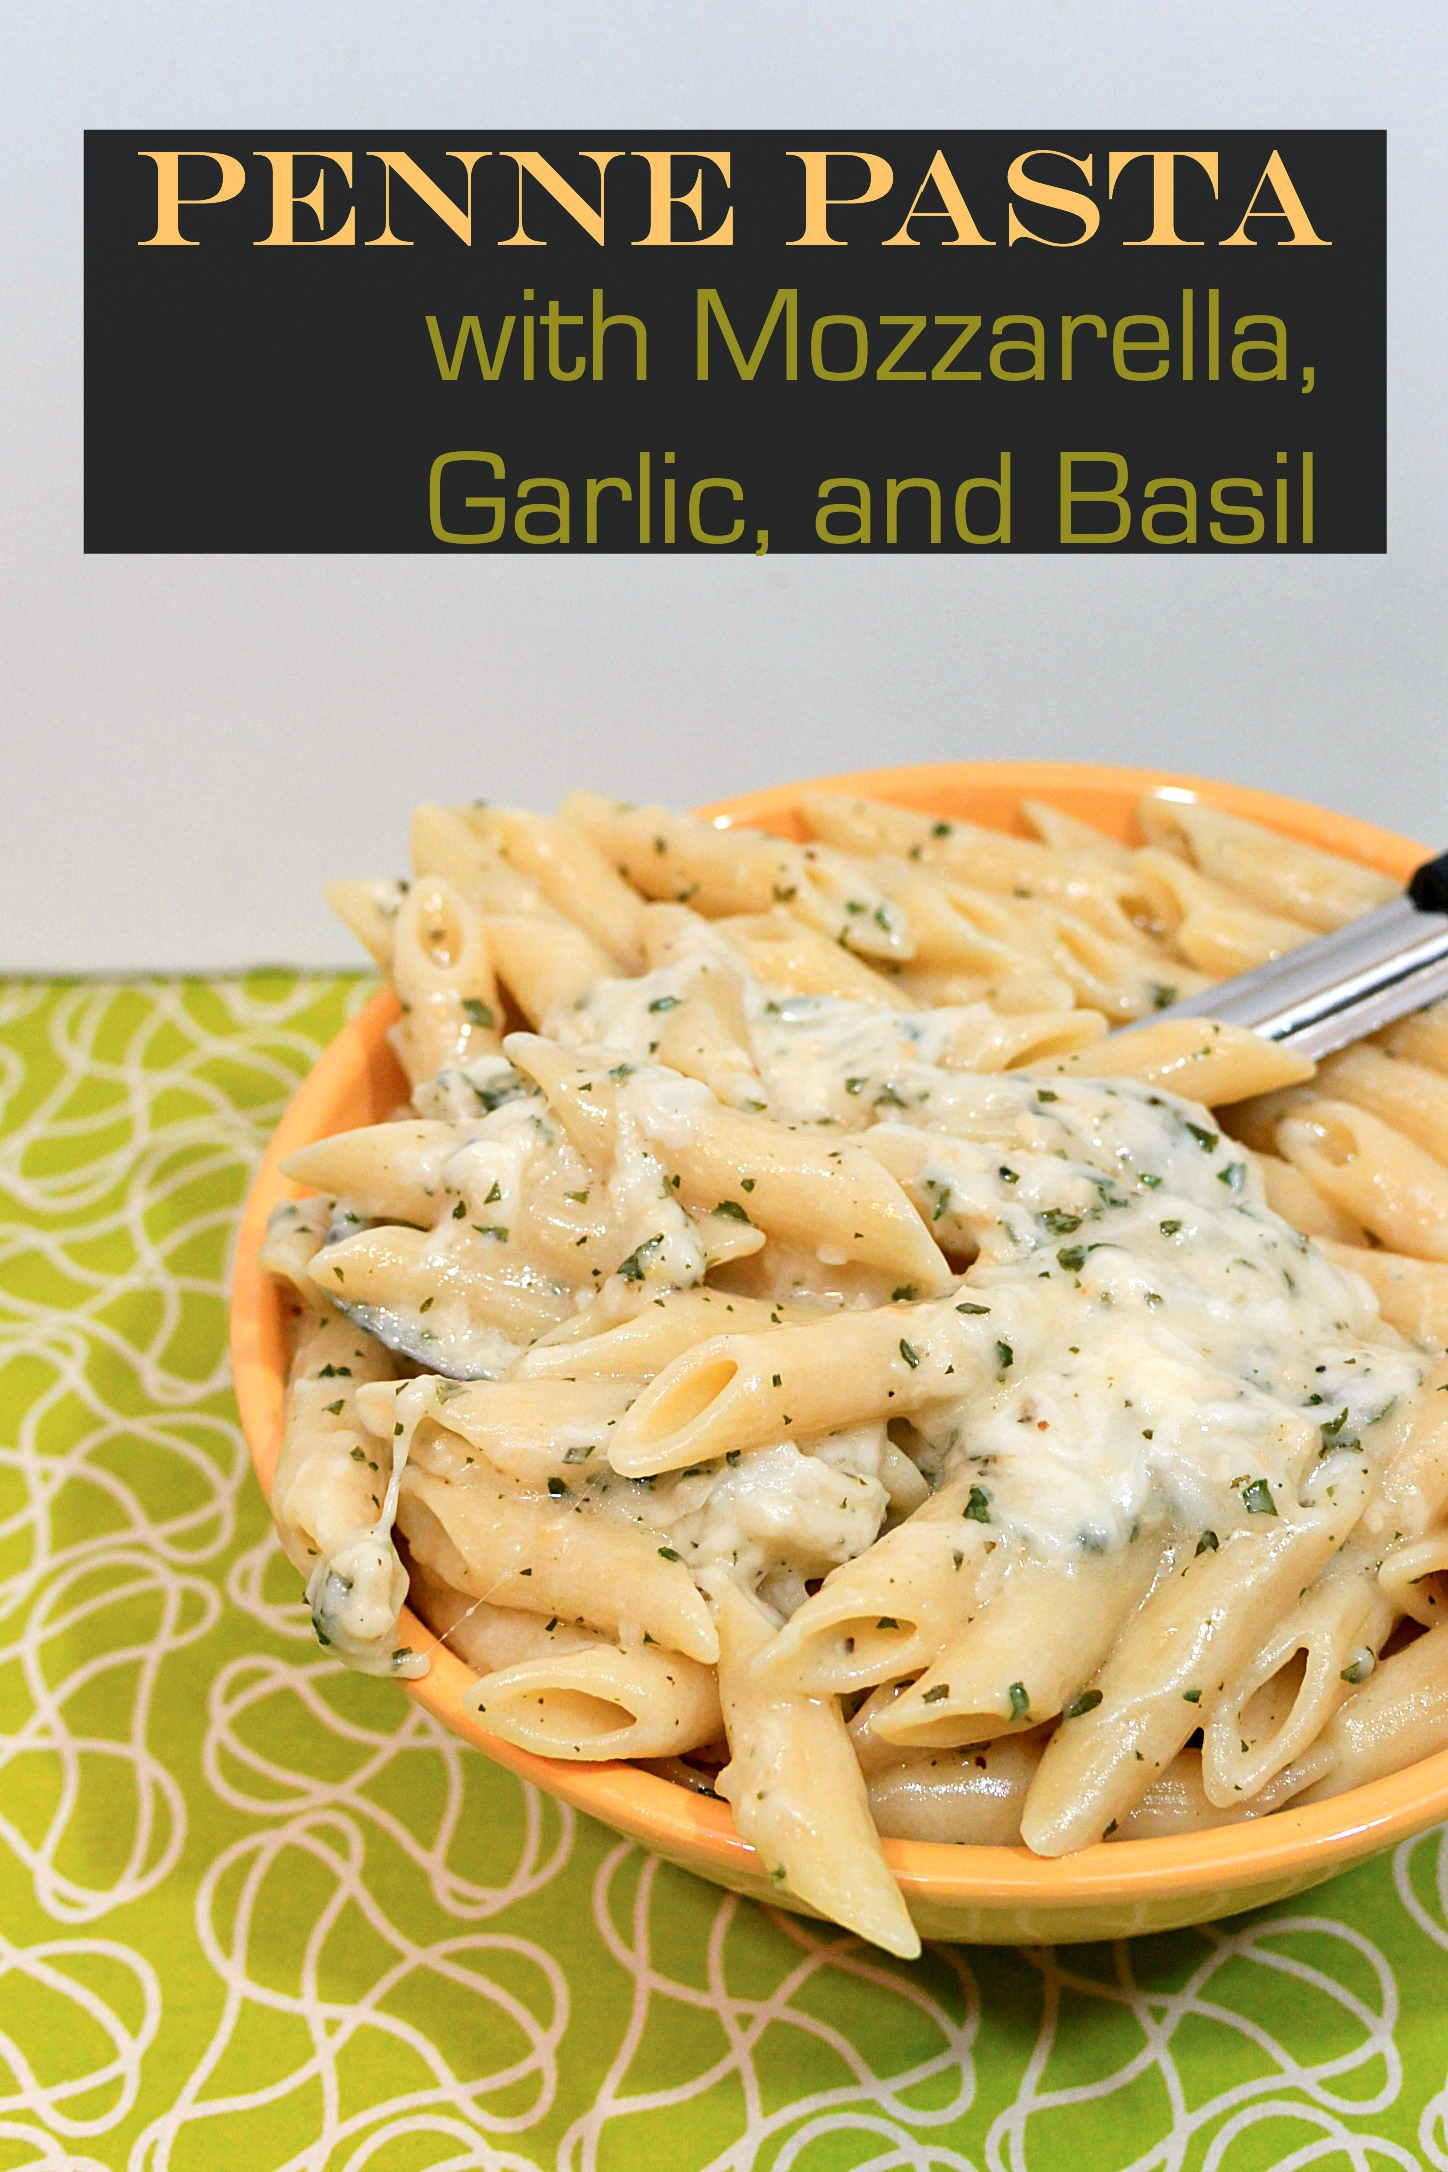 Penne Pasta Recipe with Mozzarella, Garlic and Basil.  Made with Mild Olive Oil.